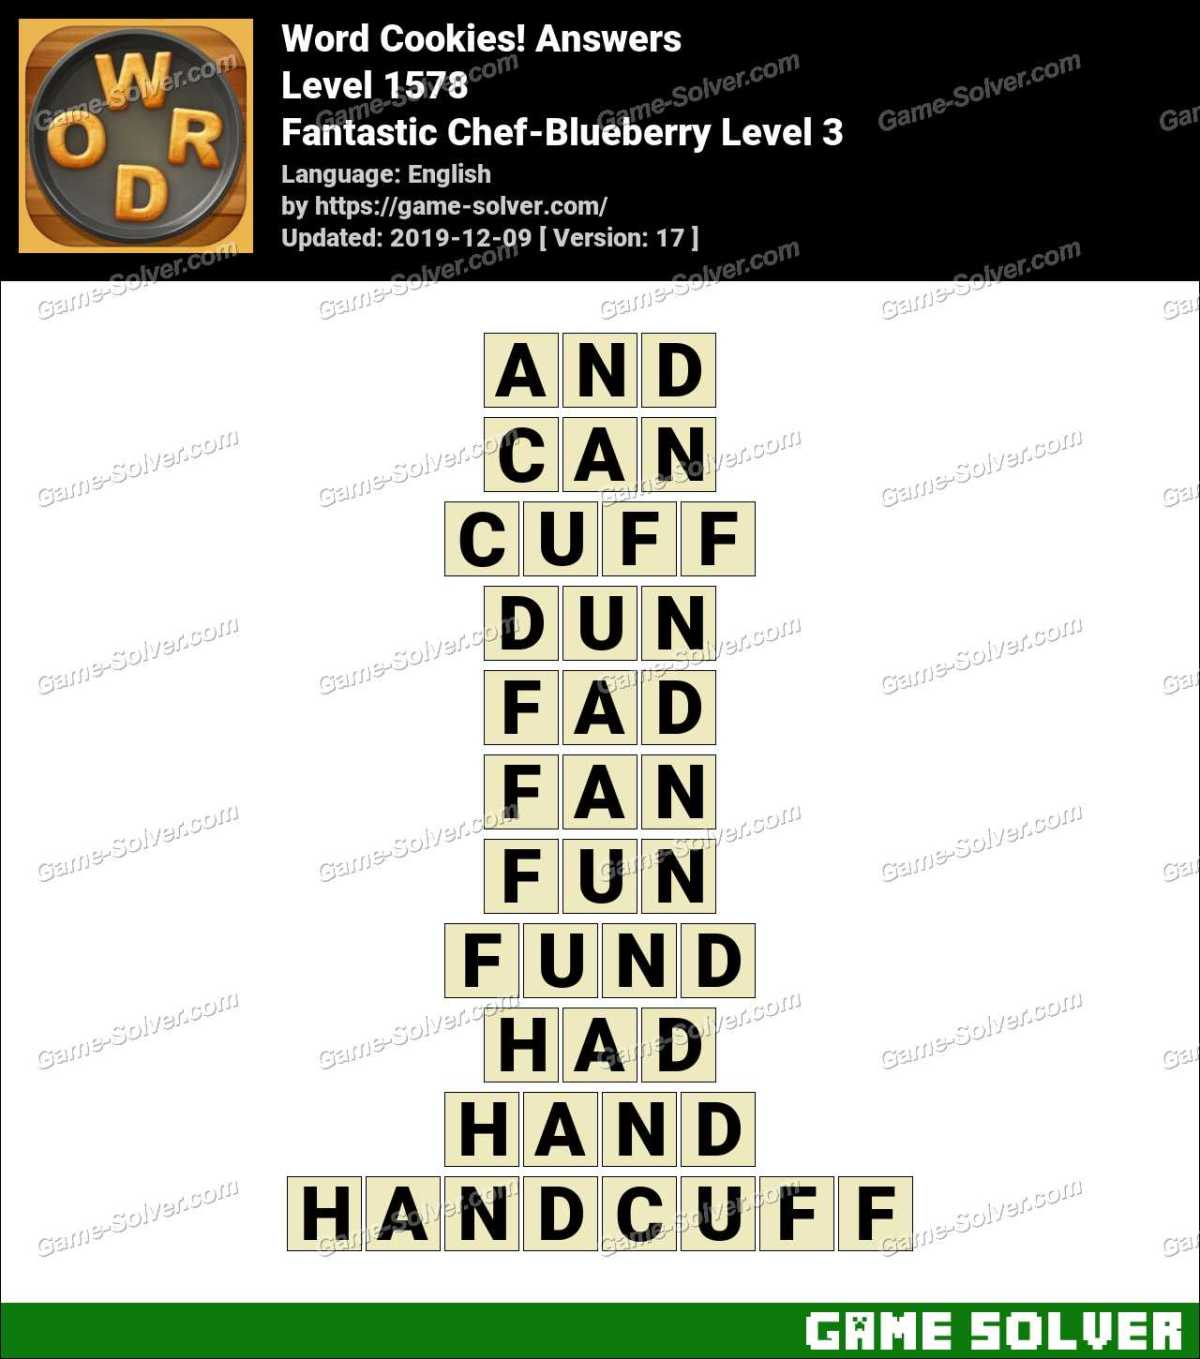 Word Cookies Fantastic Chef-Blueberry Level 3 Answers